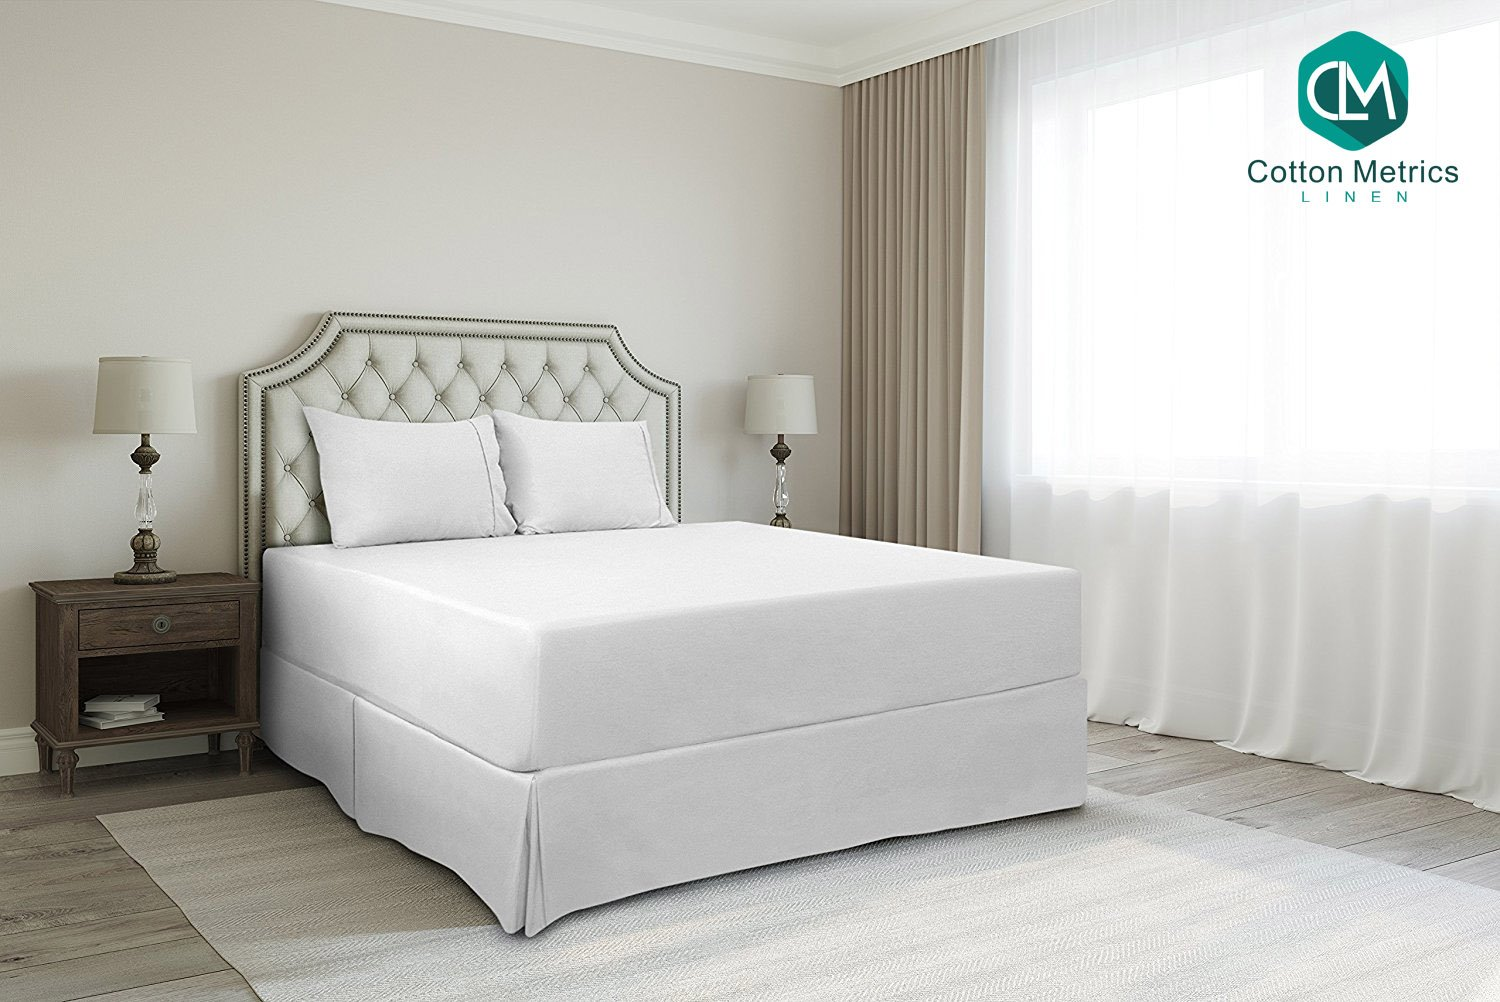 Cotton Metrics Linen Present 800TC Hotel Quality 100% Egyptian Cotton Bed Skirt 18'' Drop length Twin Size White Solid